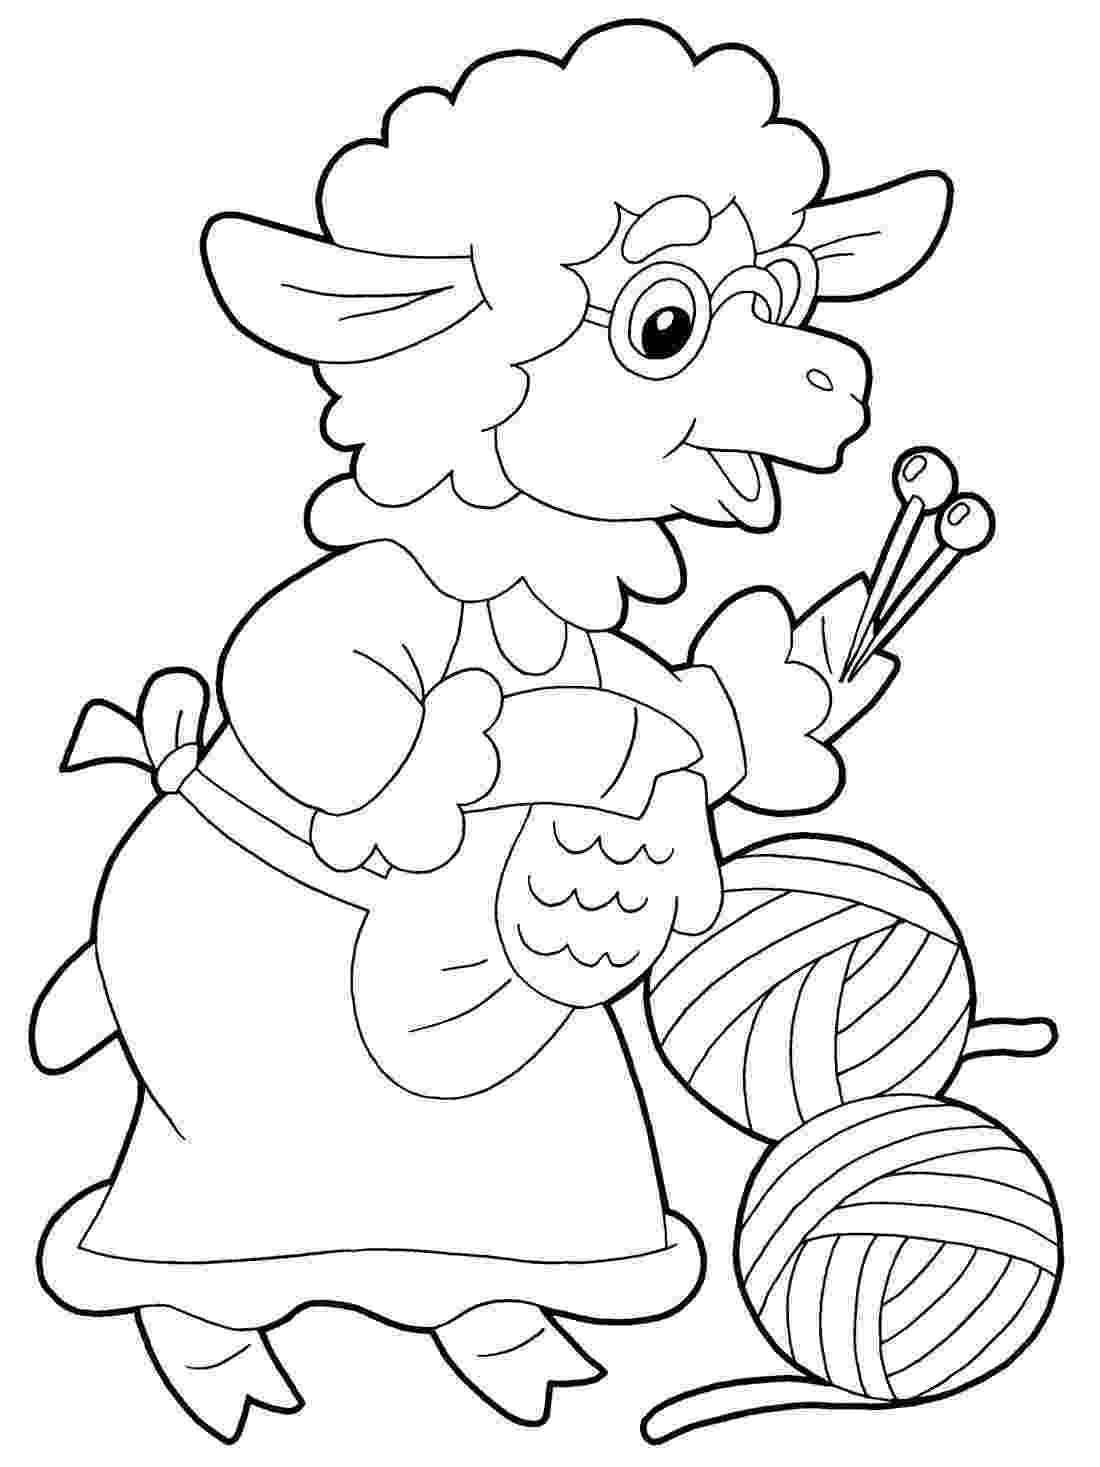 a coloring sheet smurfs coloring pages the smurfs official website a coloring sheet